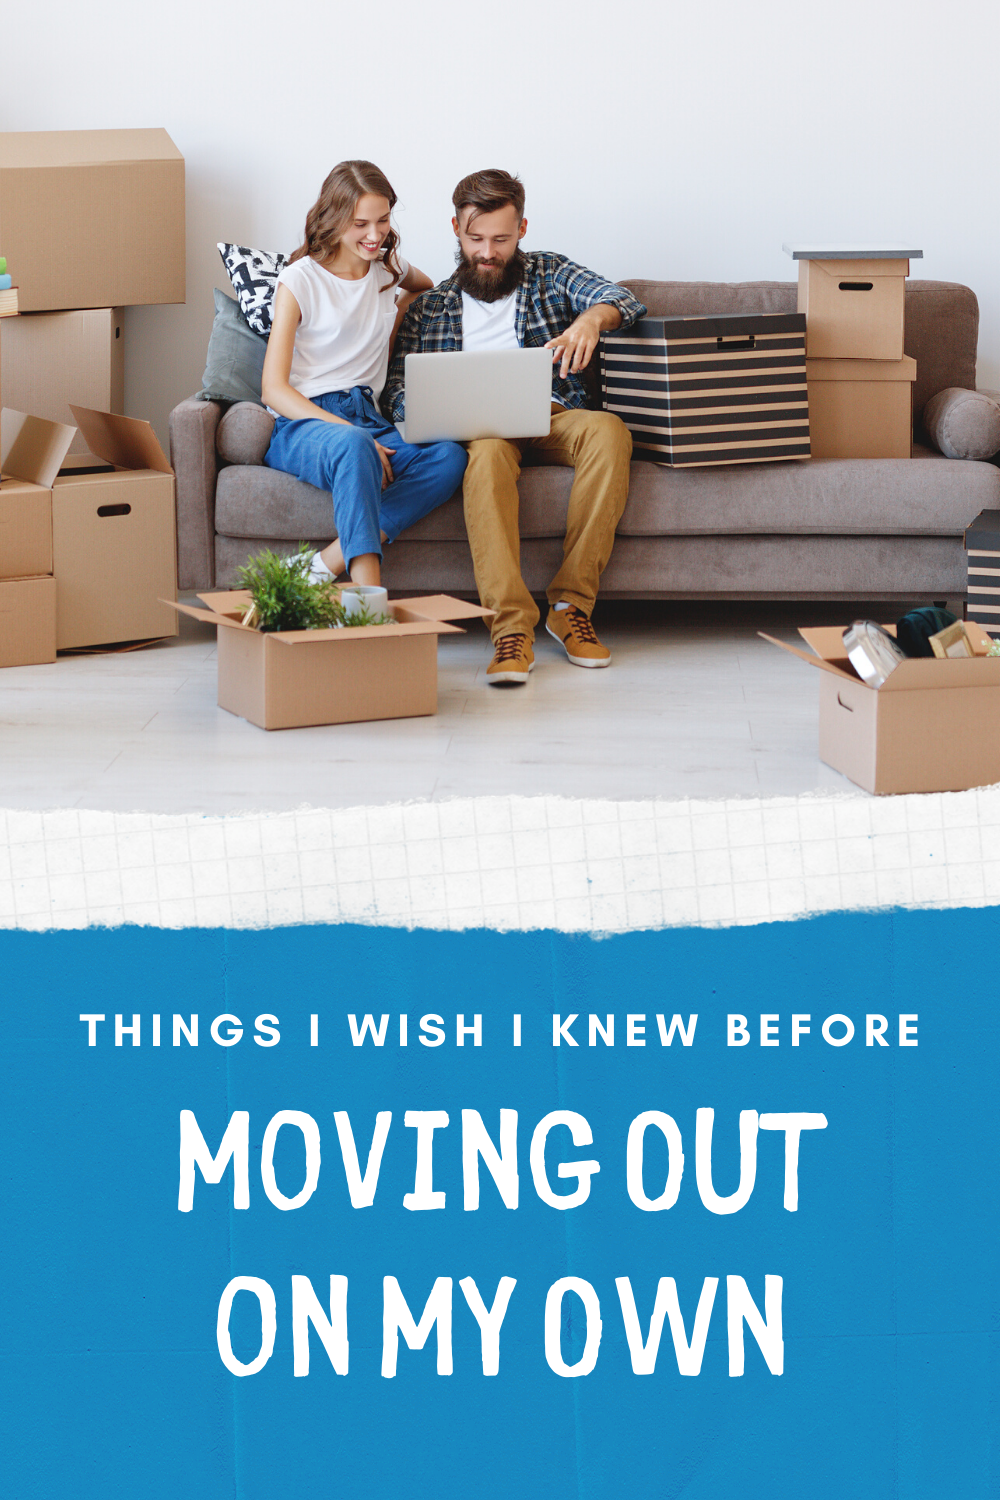 After living on my own for over 3 years I've learned a ton! Before moving out yourself, knowing these things will guarantee your success. Moving out for the first time can be scary, but learn from my experiences and you will be fine! For more lifestyle, home owner tips, finance tips, tips to pay off debt, and relationship advice visit justyouraveragejosh.com #movingout #homeowner #debtpayoff #creditcarddebt #justyouraveragejosh #lifestyleblogger